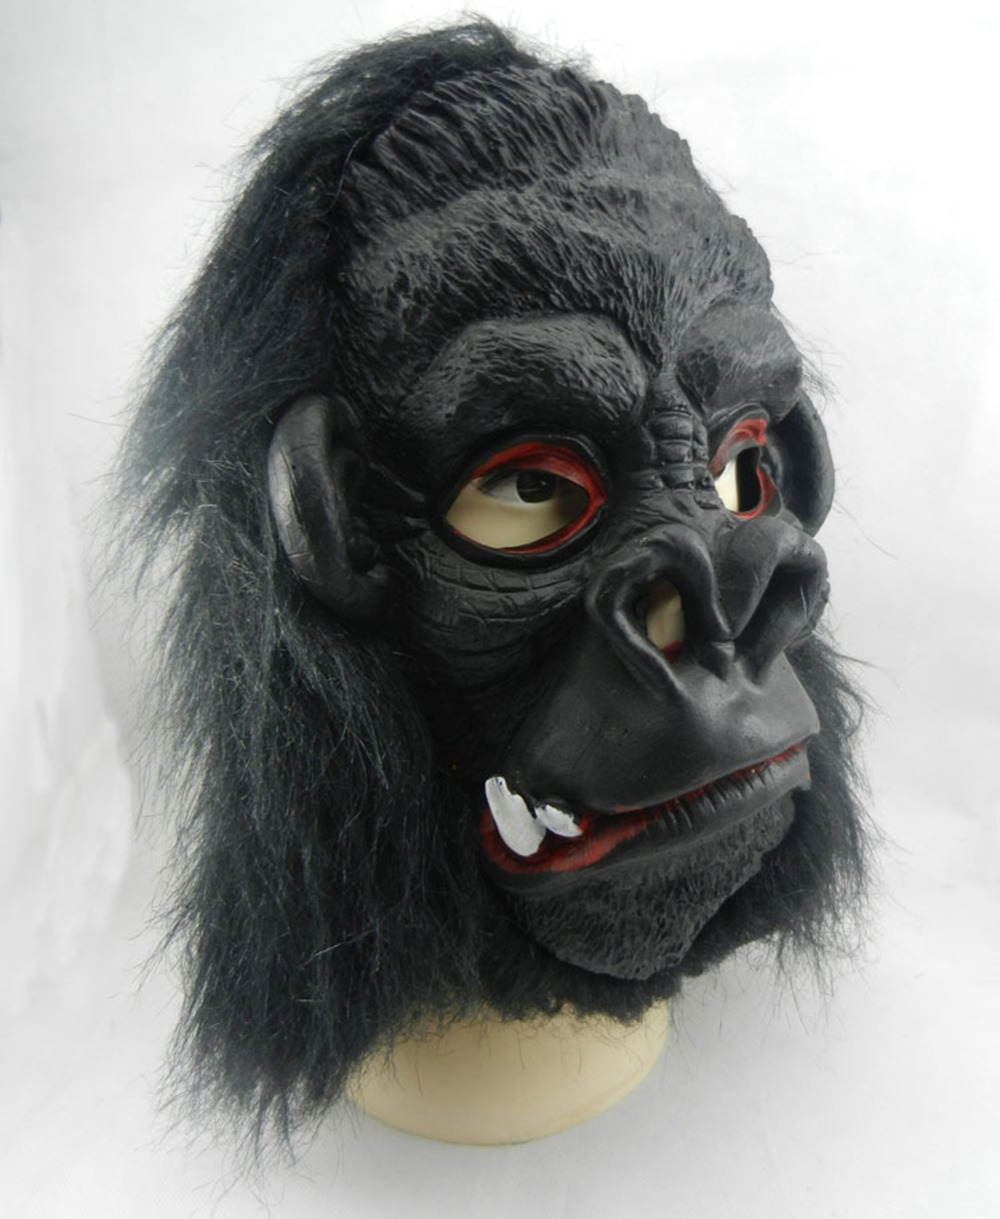 Compare Prices on Halloween Gorilla- Online Shopping/Buy Low Price ...